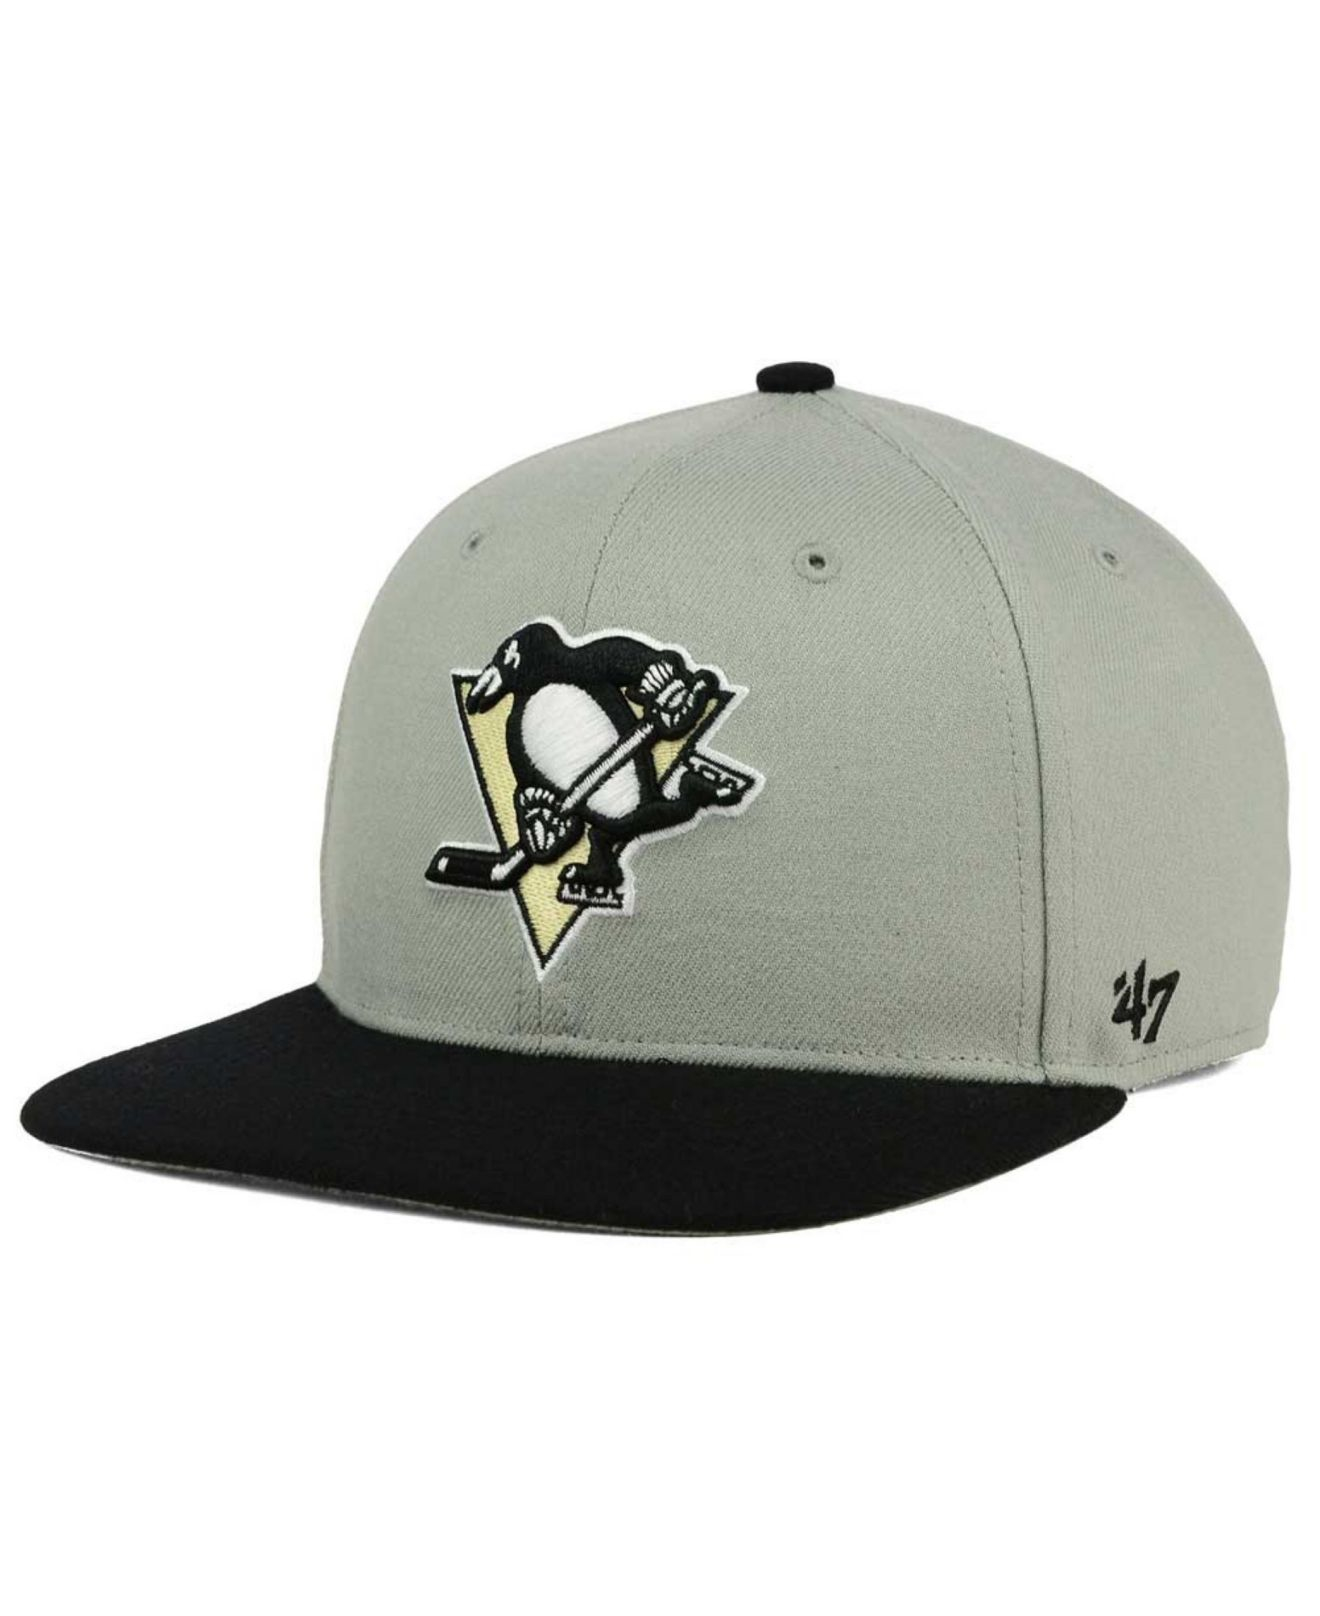 timeless design 77cf0 e7a98 Lyst - 47 Brand Pittsburgh Penguins Sure Shot Snapback Cap in Gray ...